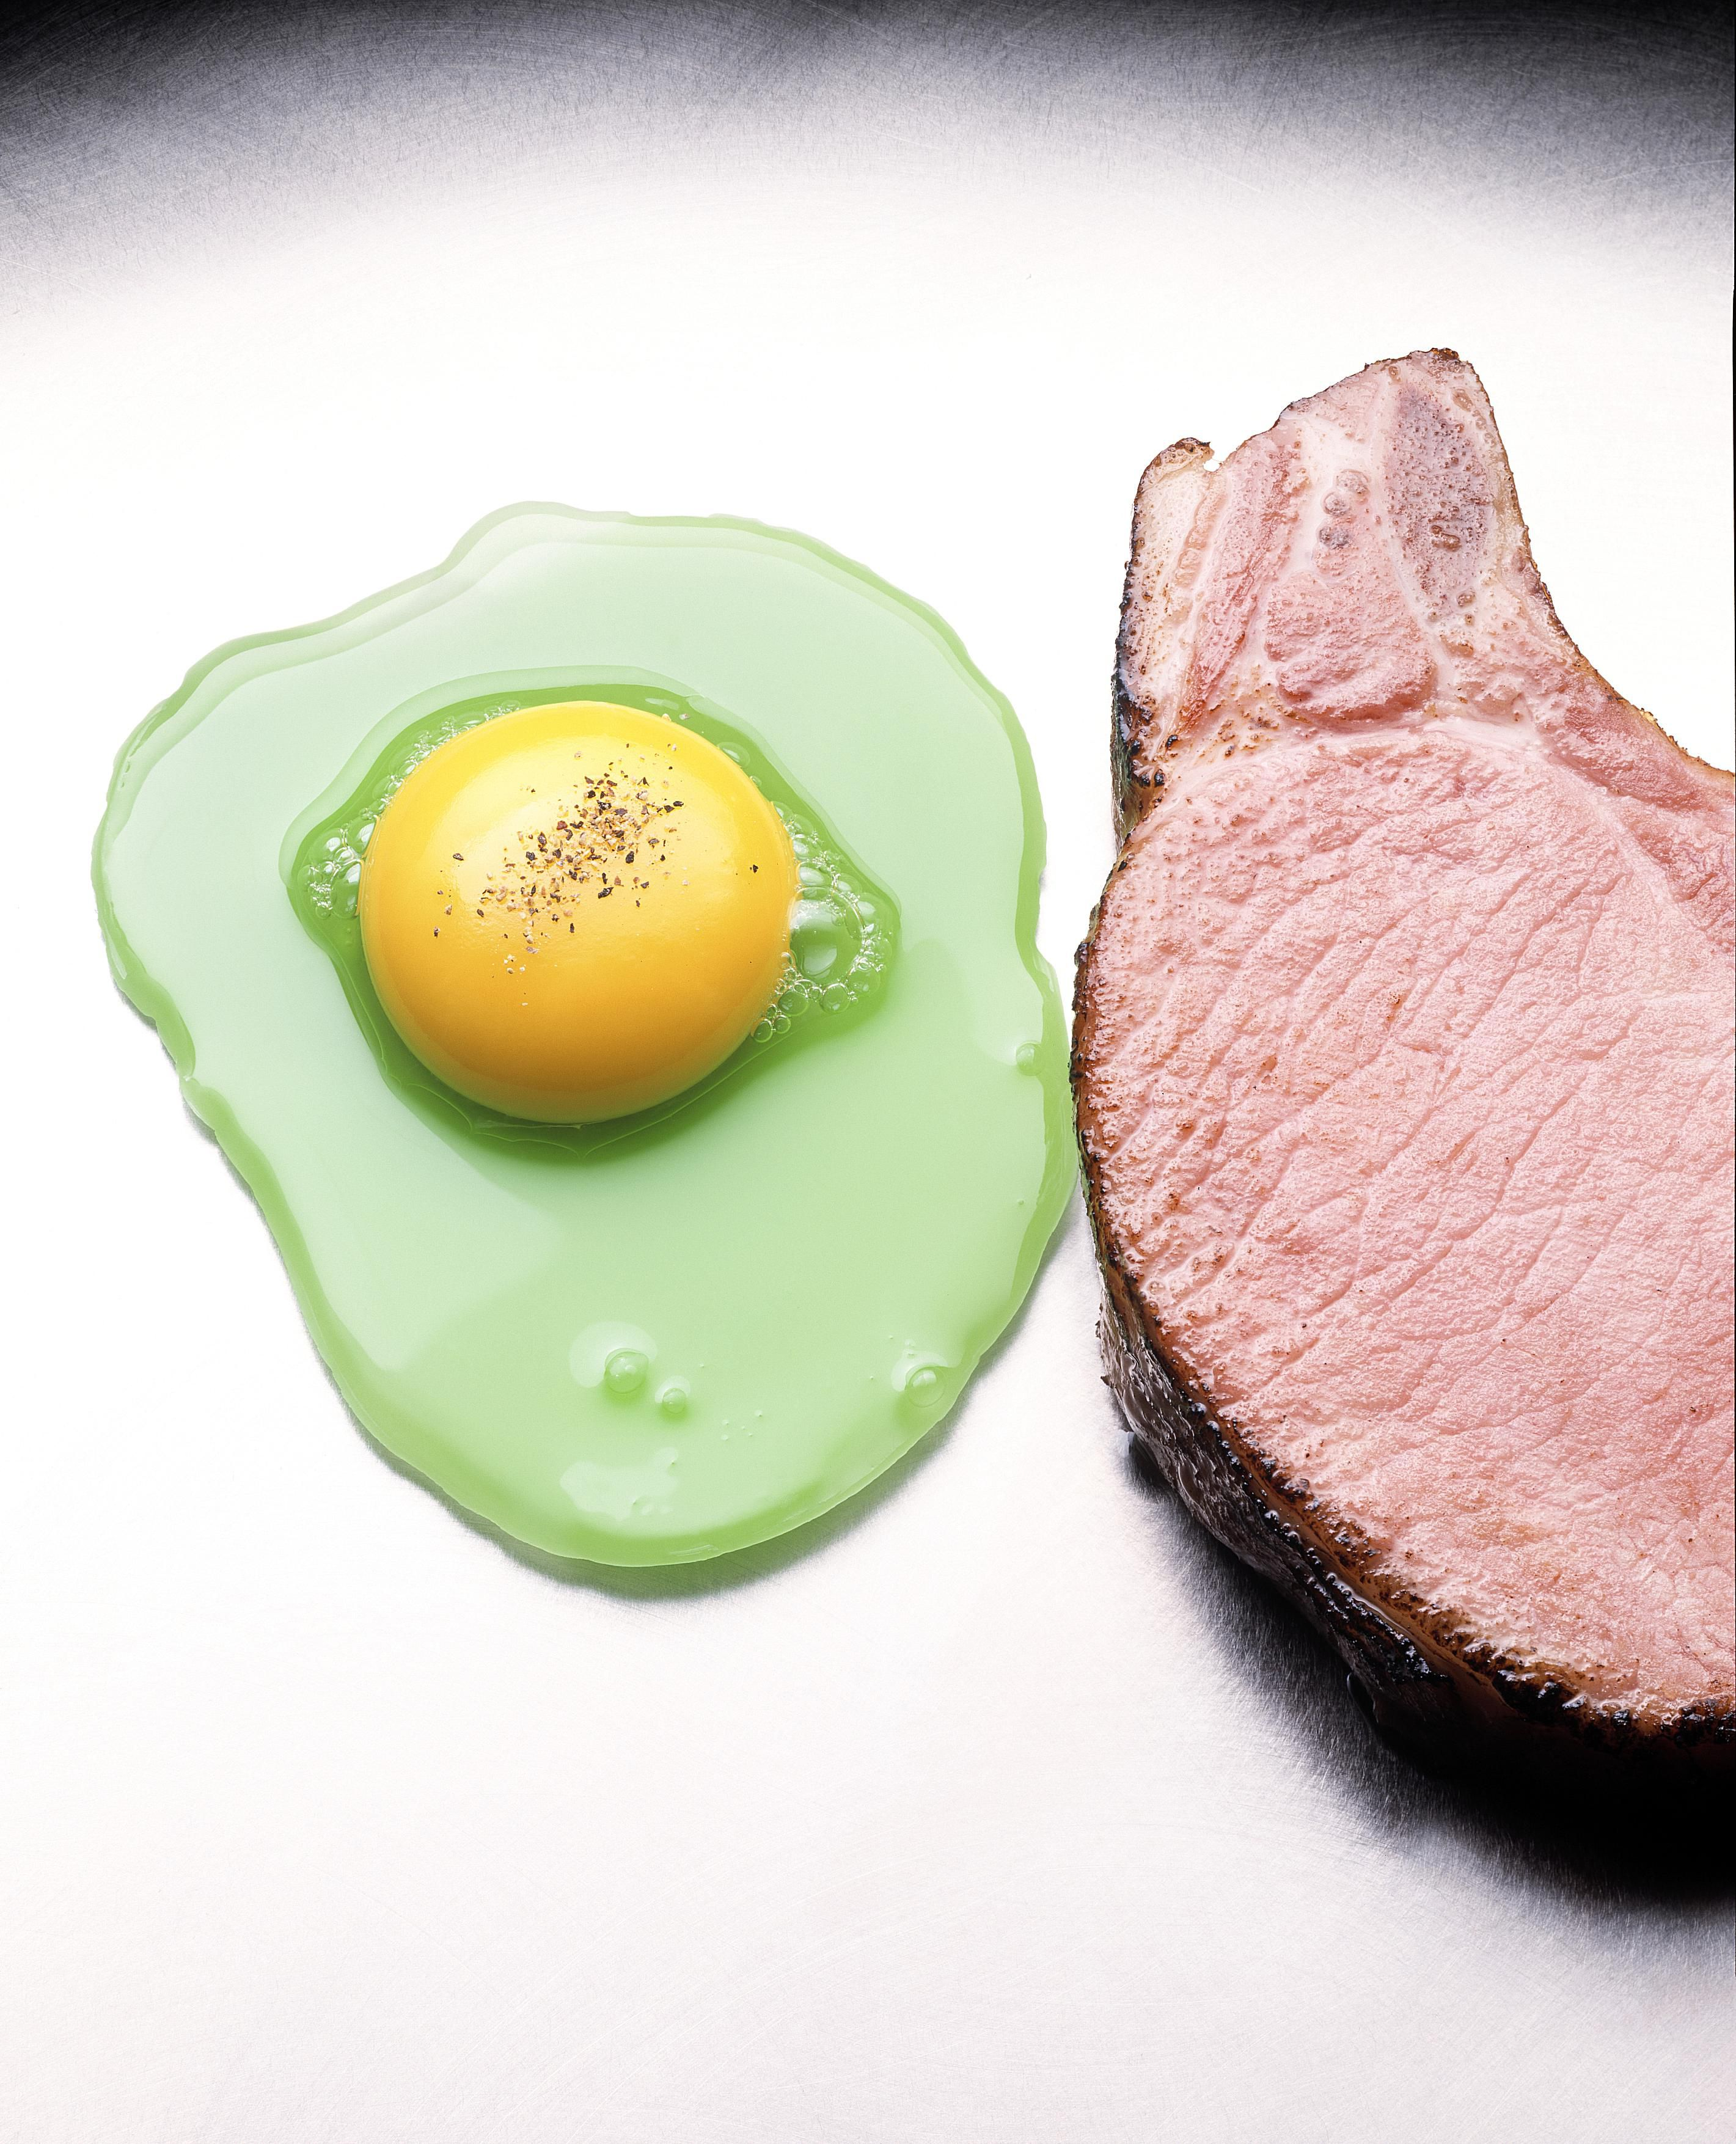 One way to make green eggs is using food coloring, but you can also turn an egg white green using cabbage juice.